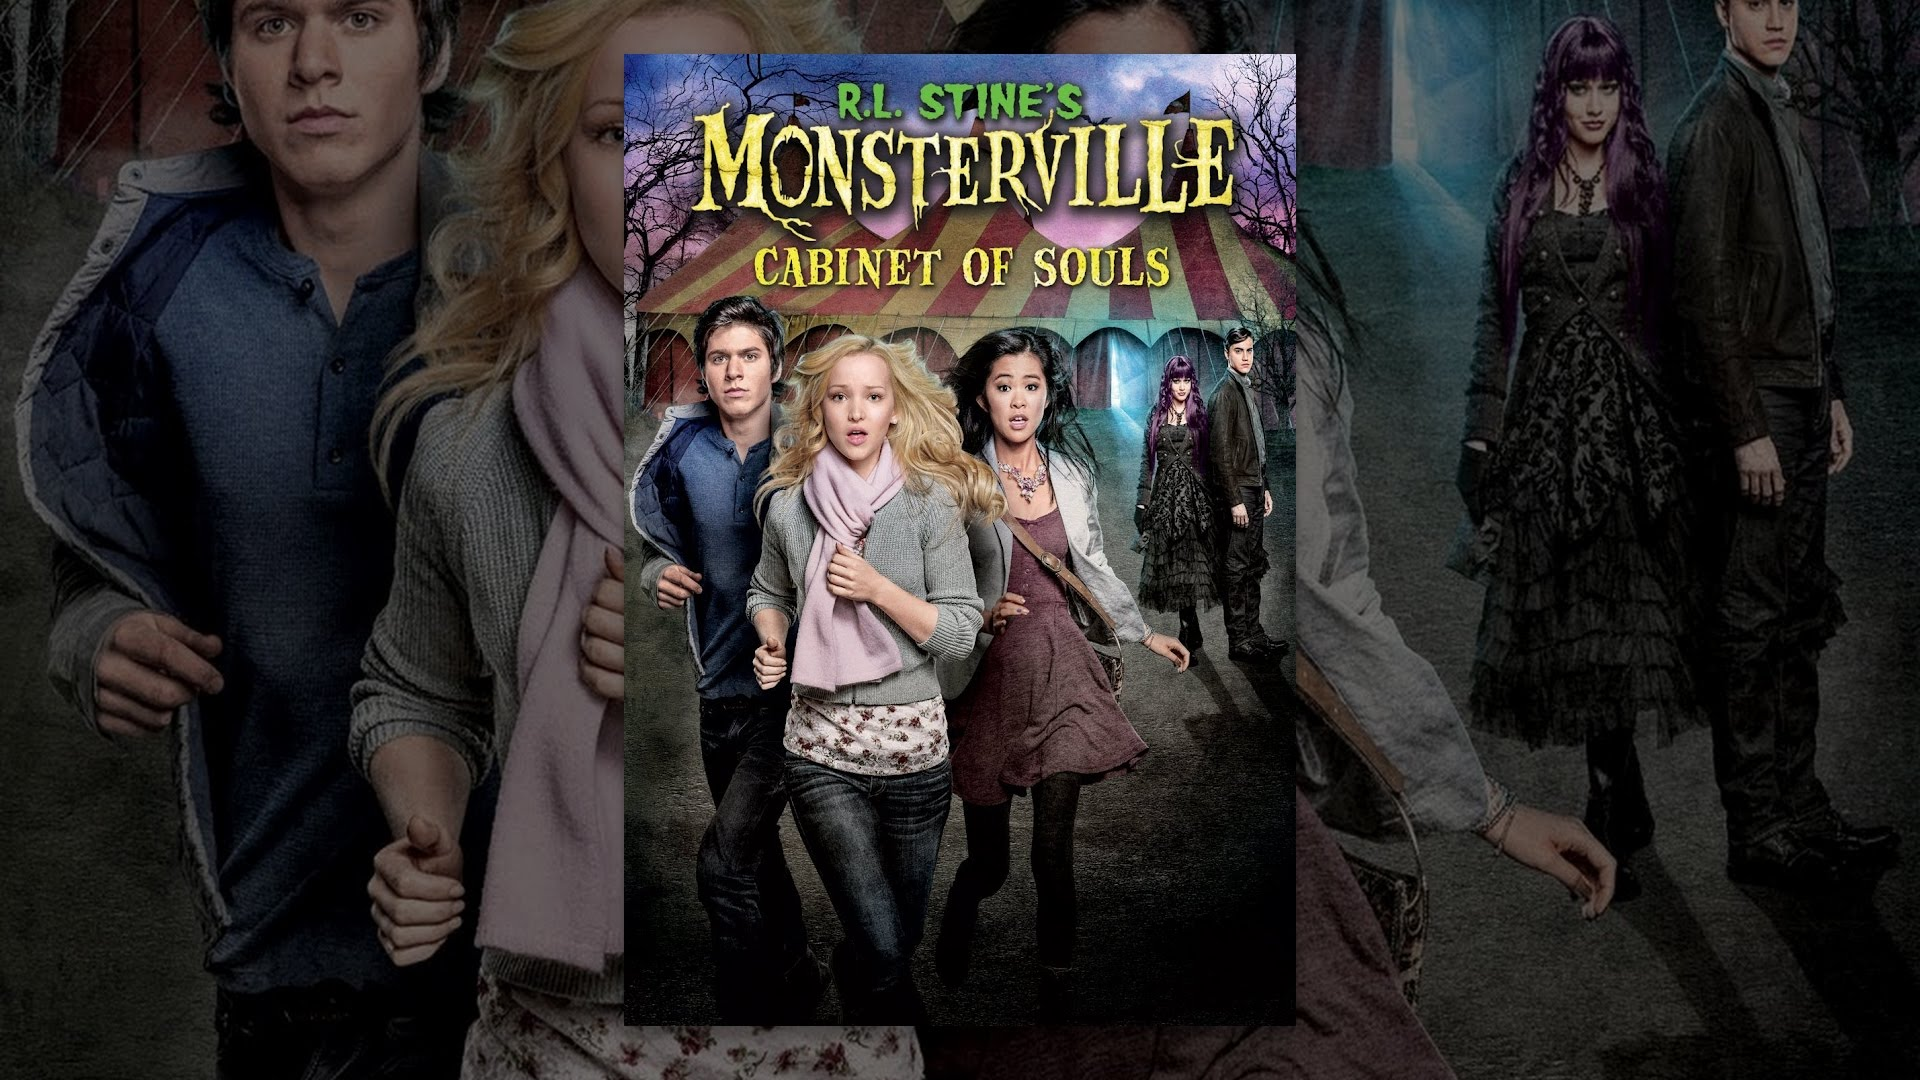 R.L. Stine's Monsterville: Cabinet of Souls - YouTube